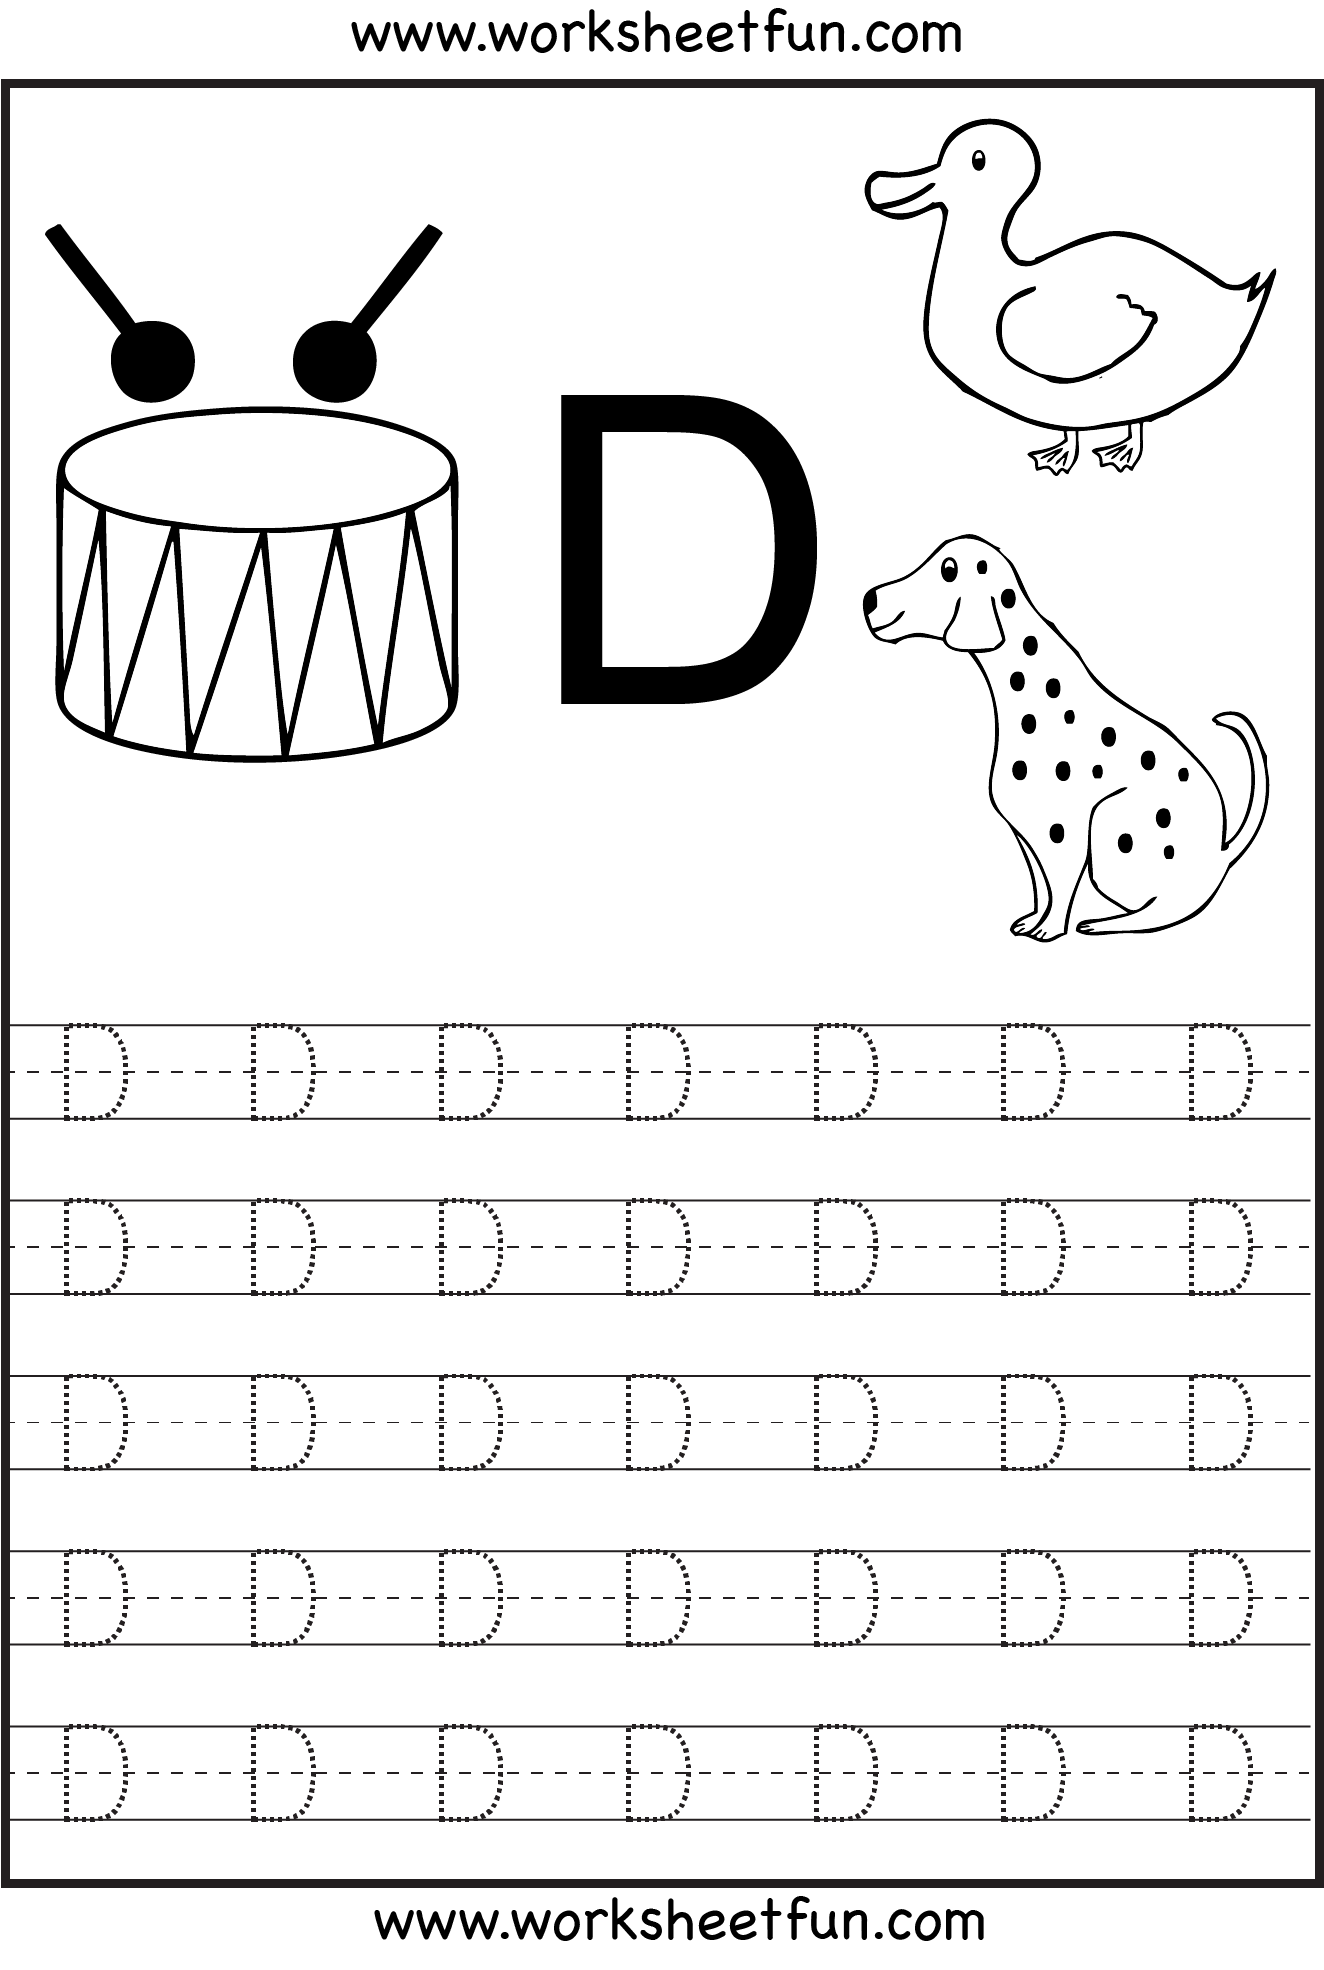 7 Best Images of A Capital Letter Tracing Preschool Worksheets ...